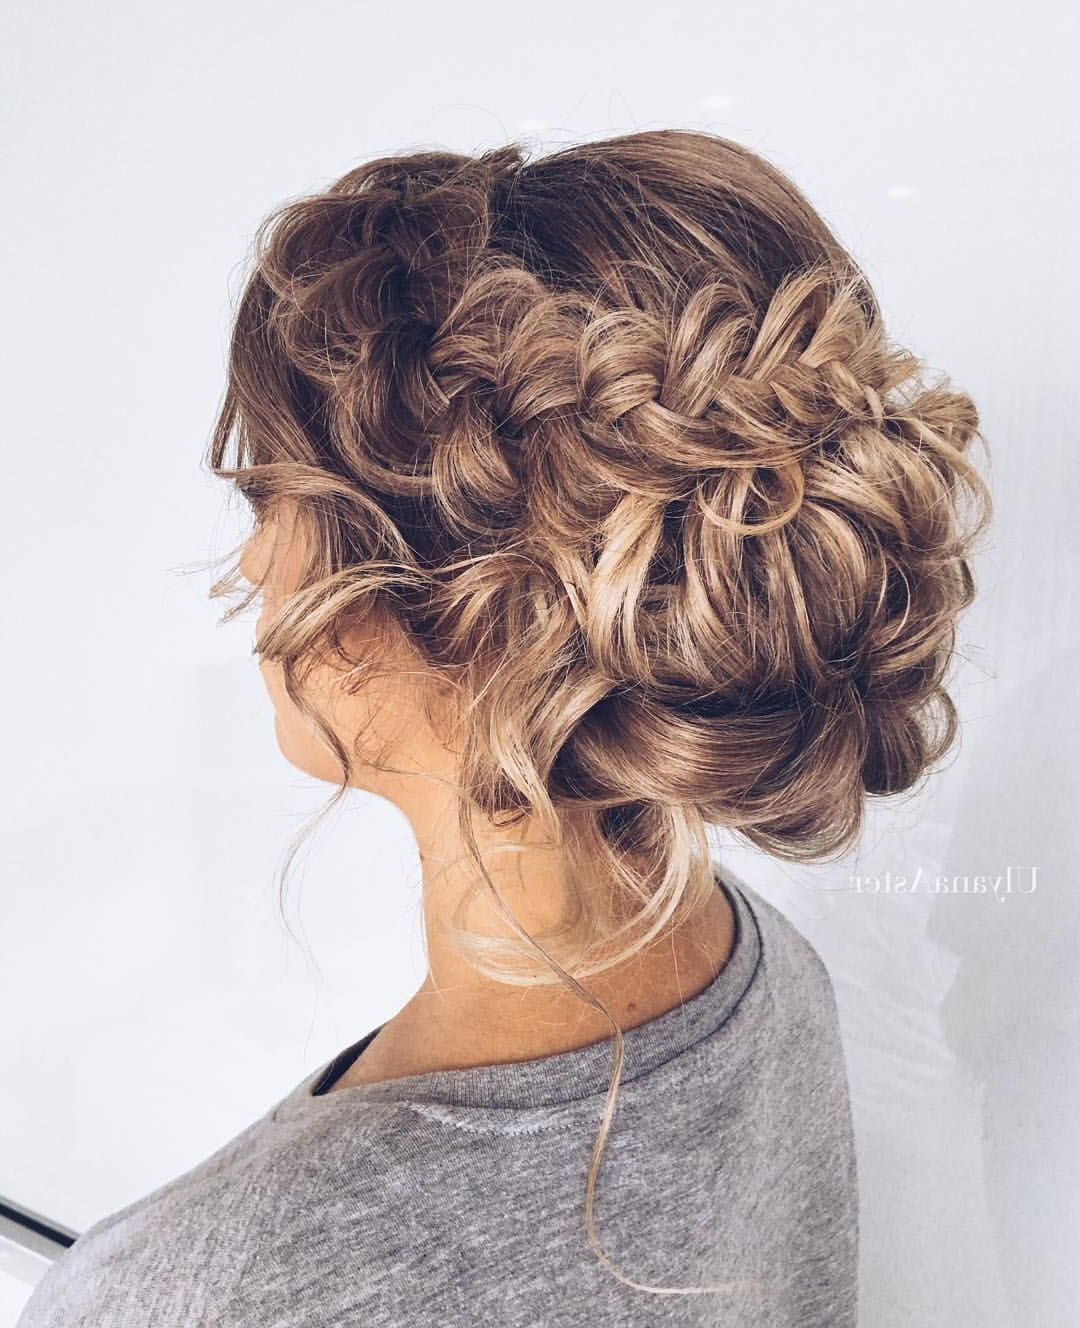 Curly Hair Styles, Hair Throughout Favorite Curly Knot Sideways Prom Hairstyles (View 6 of 20)